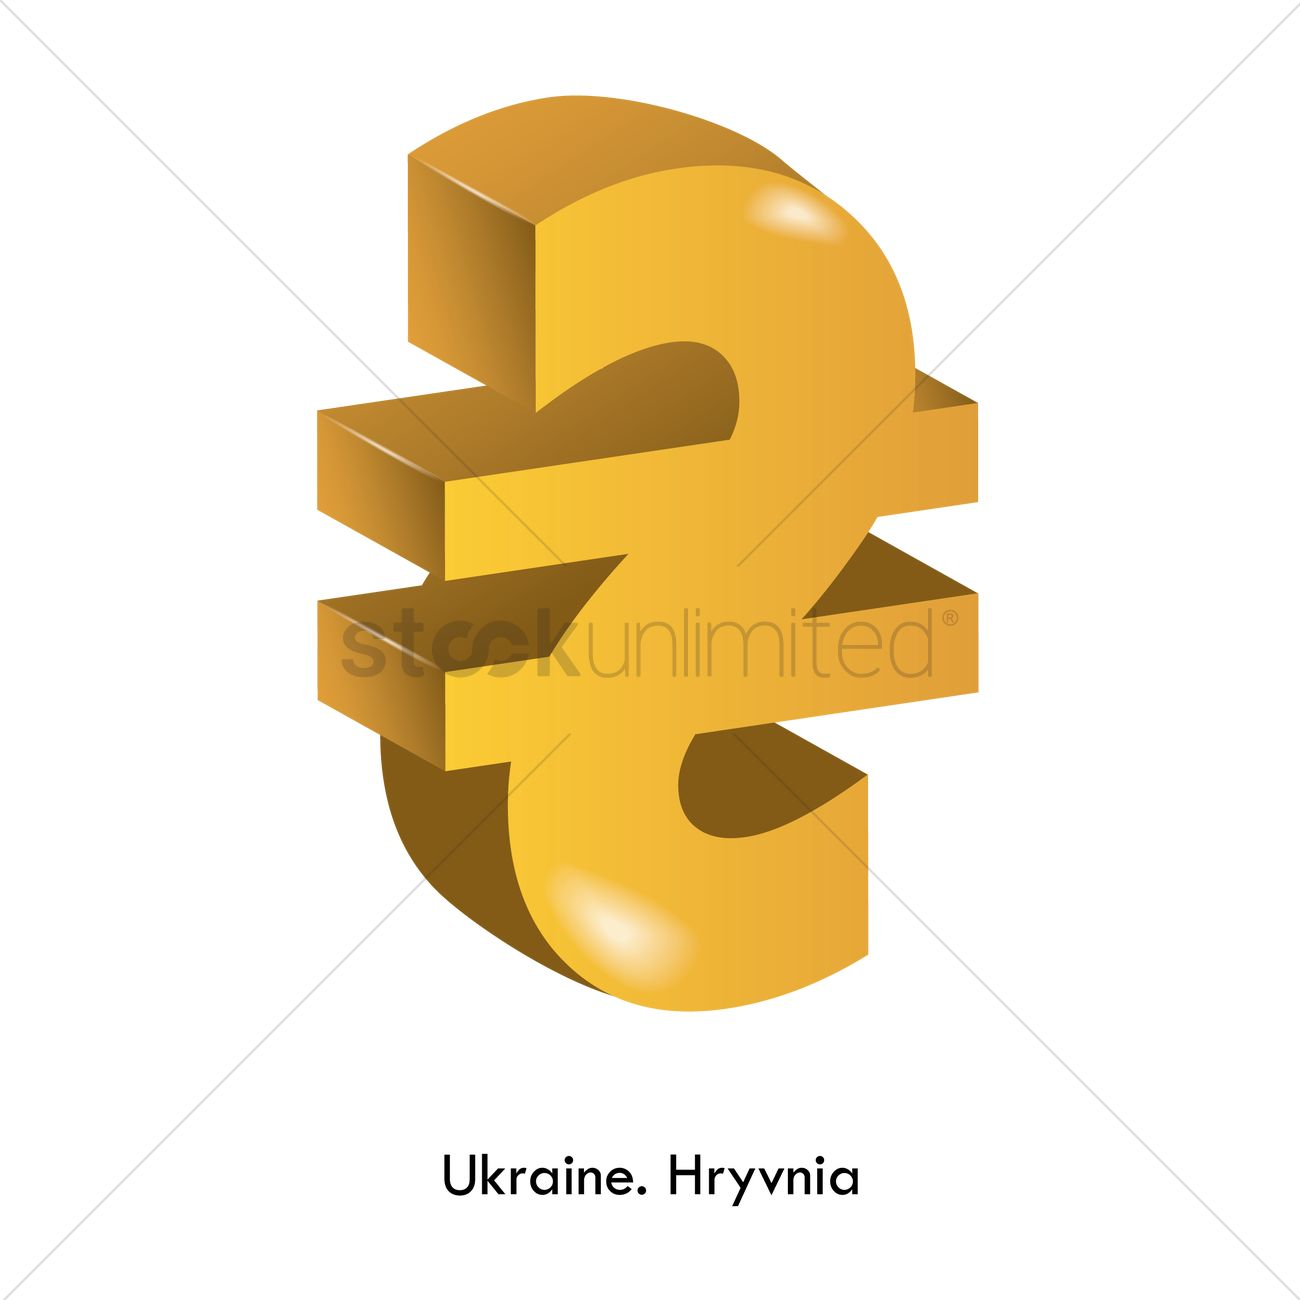 Hryvnia Currency Vector Image 1821526 Stockunlimited